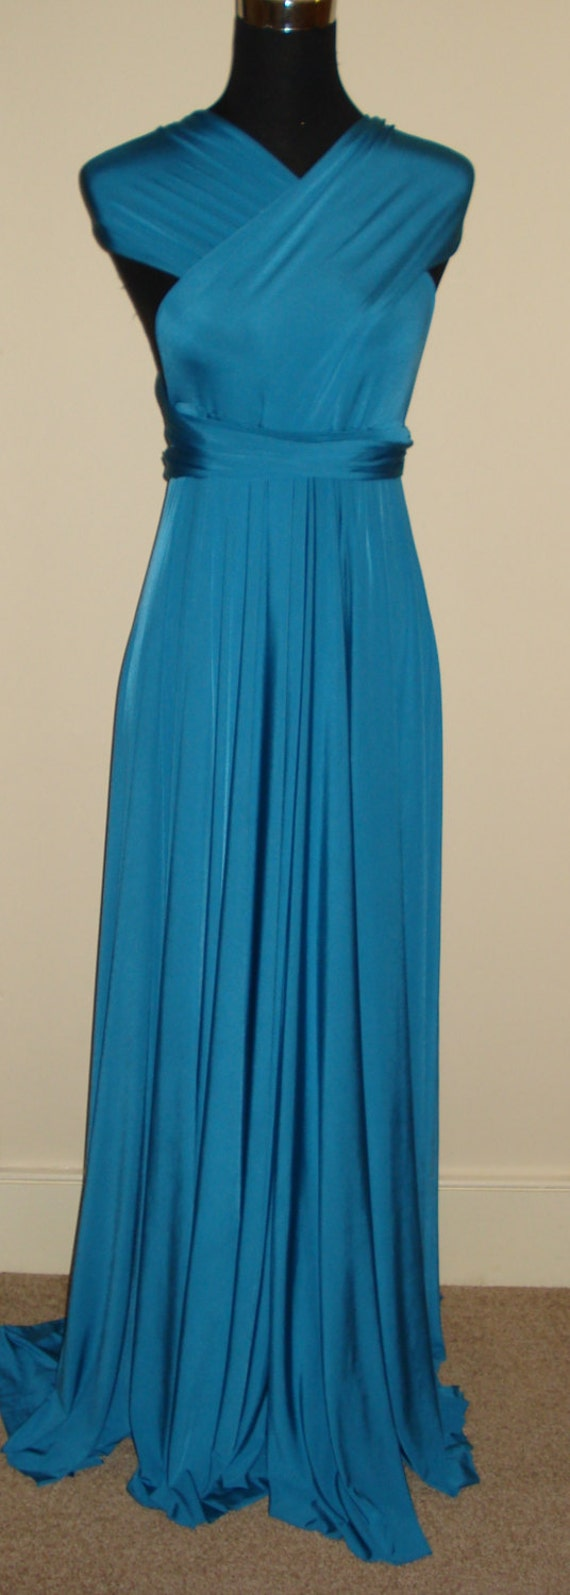 Teal Bridesmaid Dress Teal Blue Convertible Dress Infinity